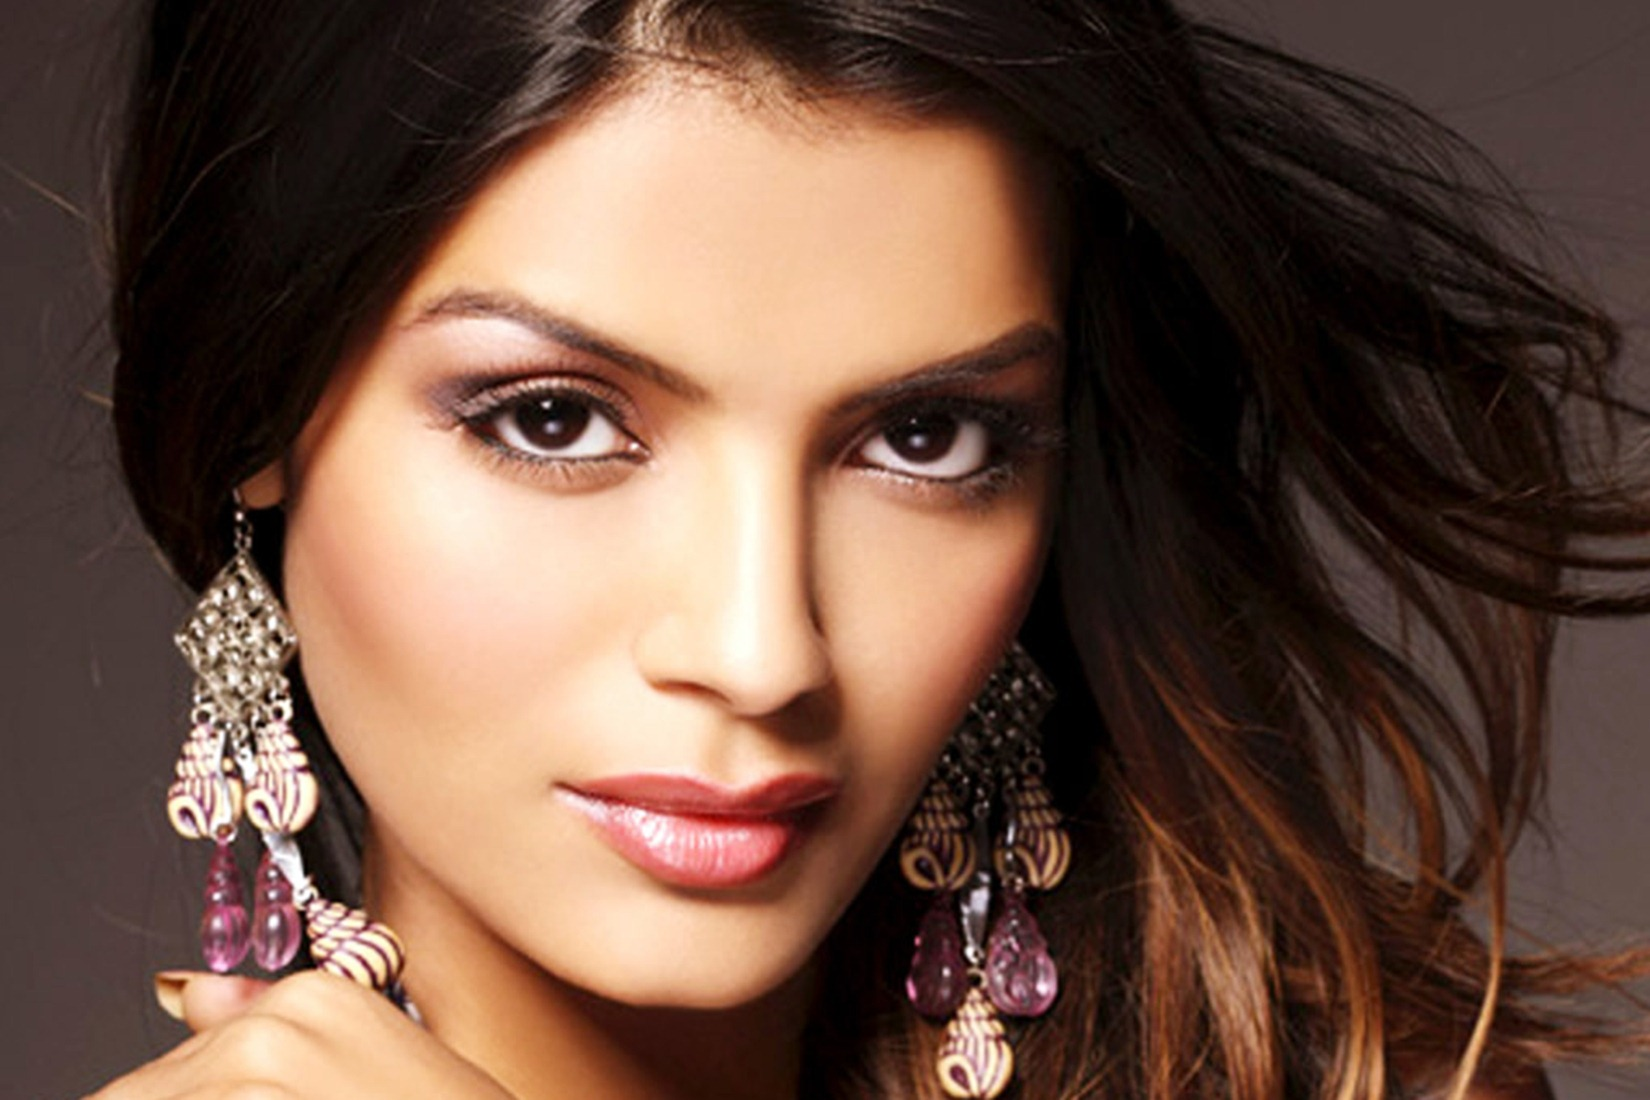 sonali raut file comlaint with cyber crime cell to nab imposter